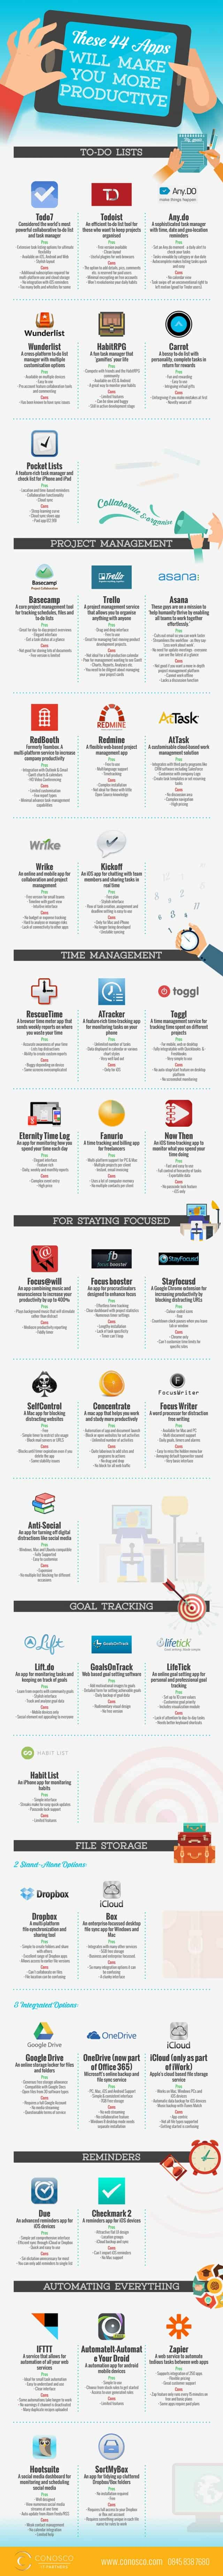 Apps to Make You More Productive